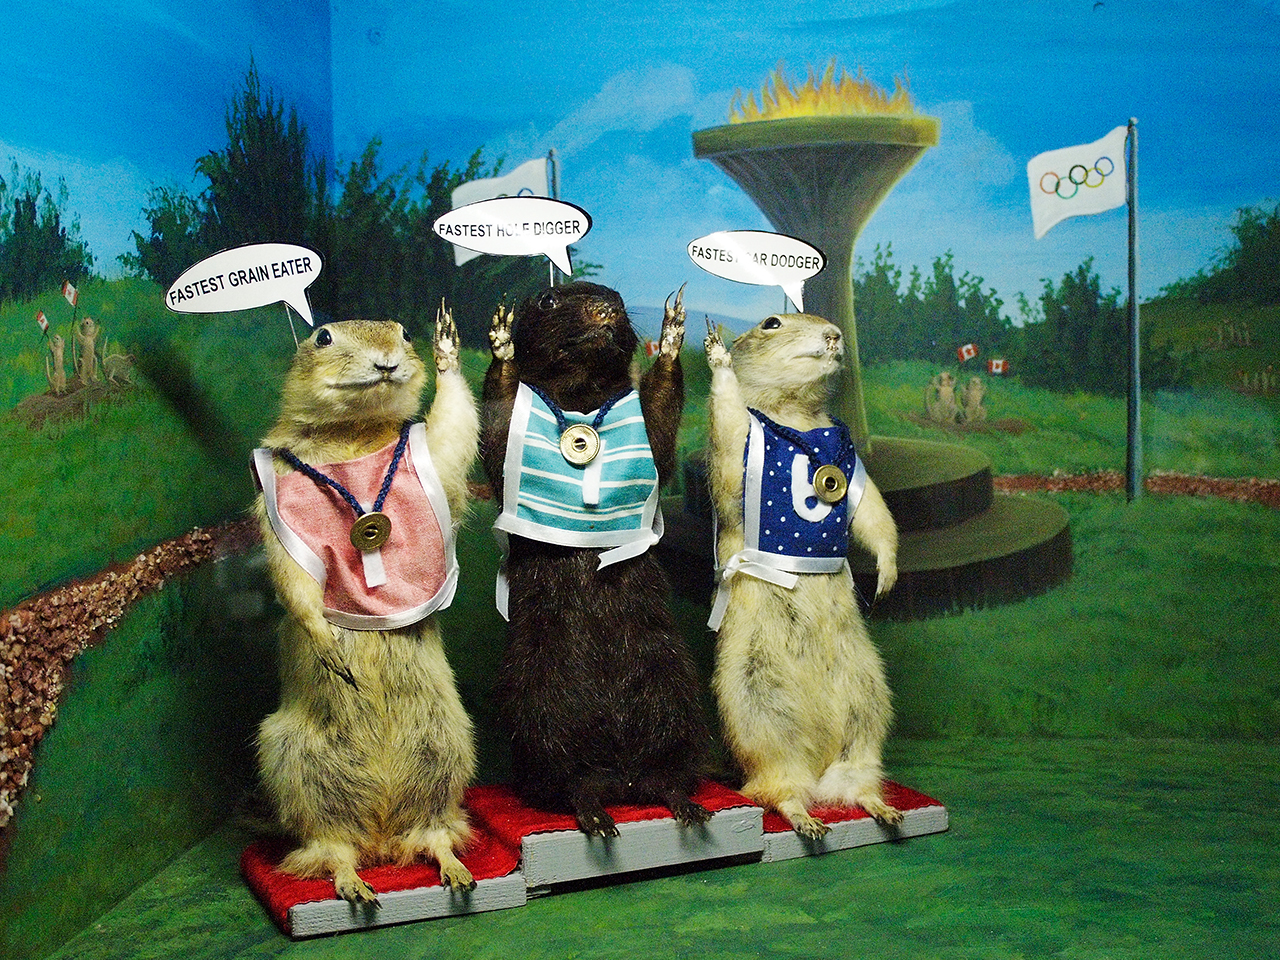 3 gophers on Olympic podium